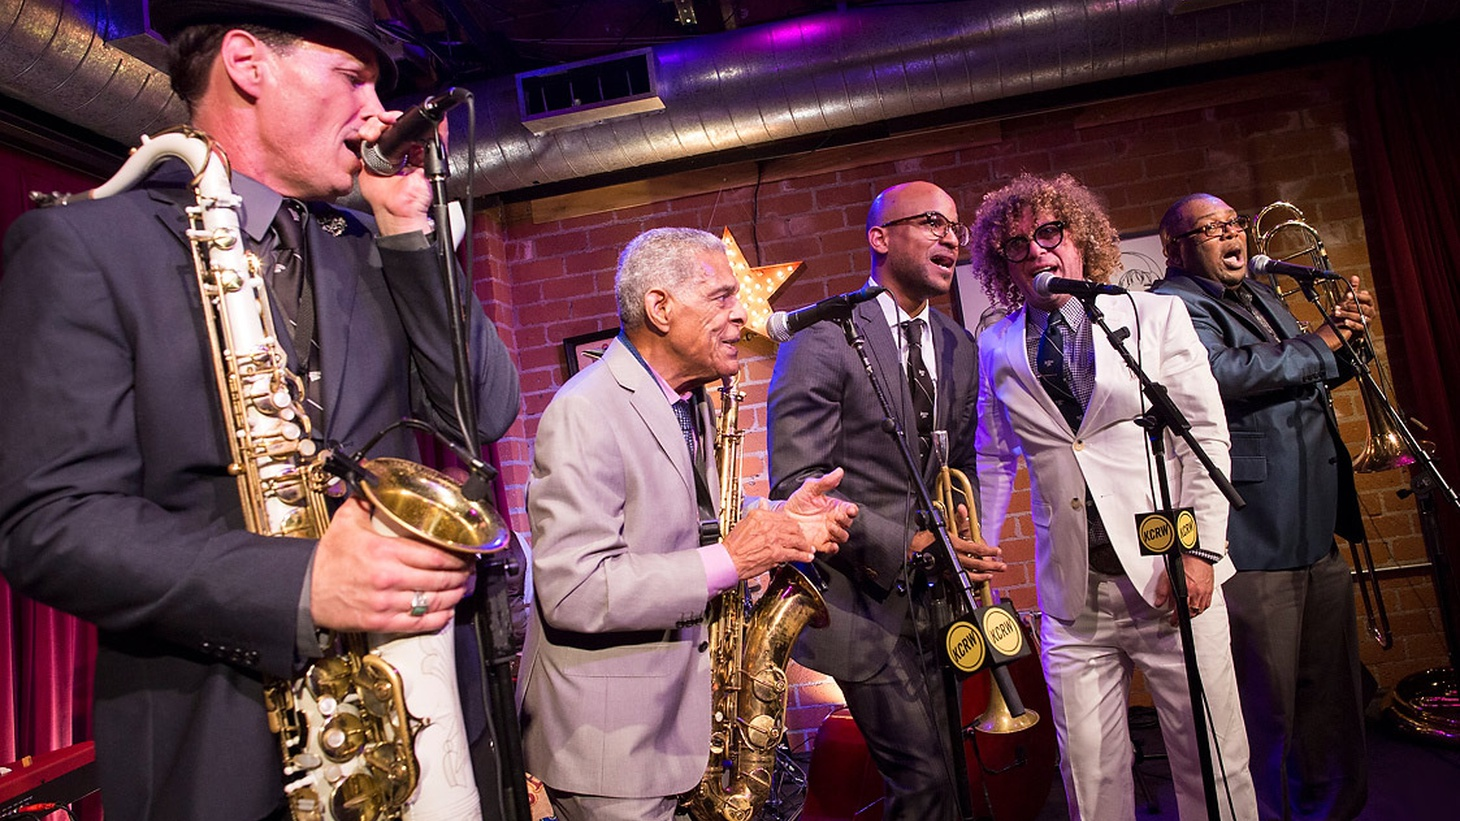 Preservation Hall Jazz Band has been at it for over 50 years and their name is pretty much synonymous with the spirit of New Orleans.